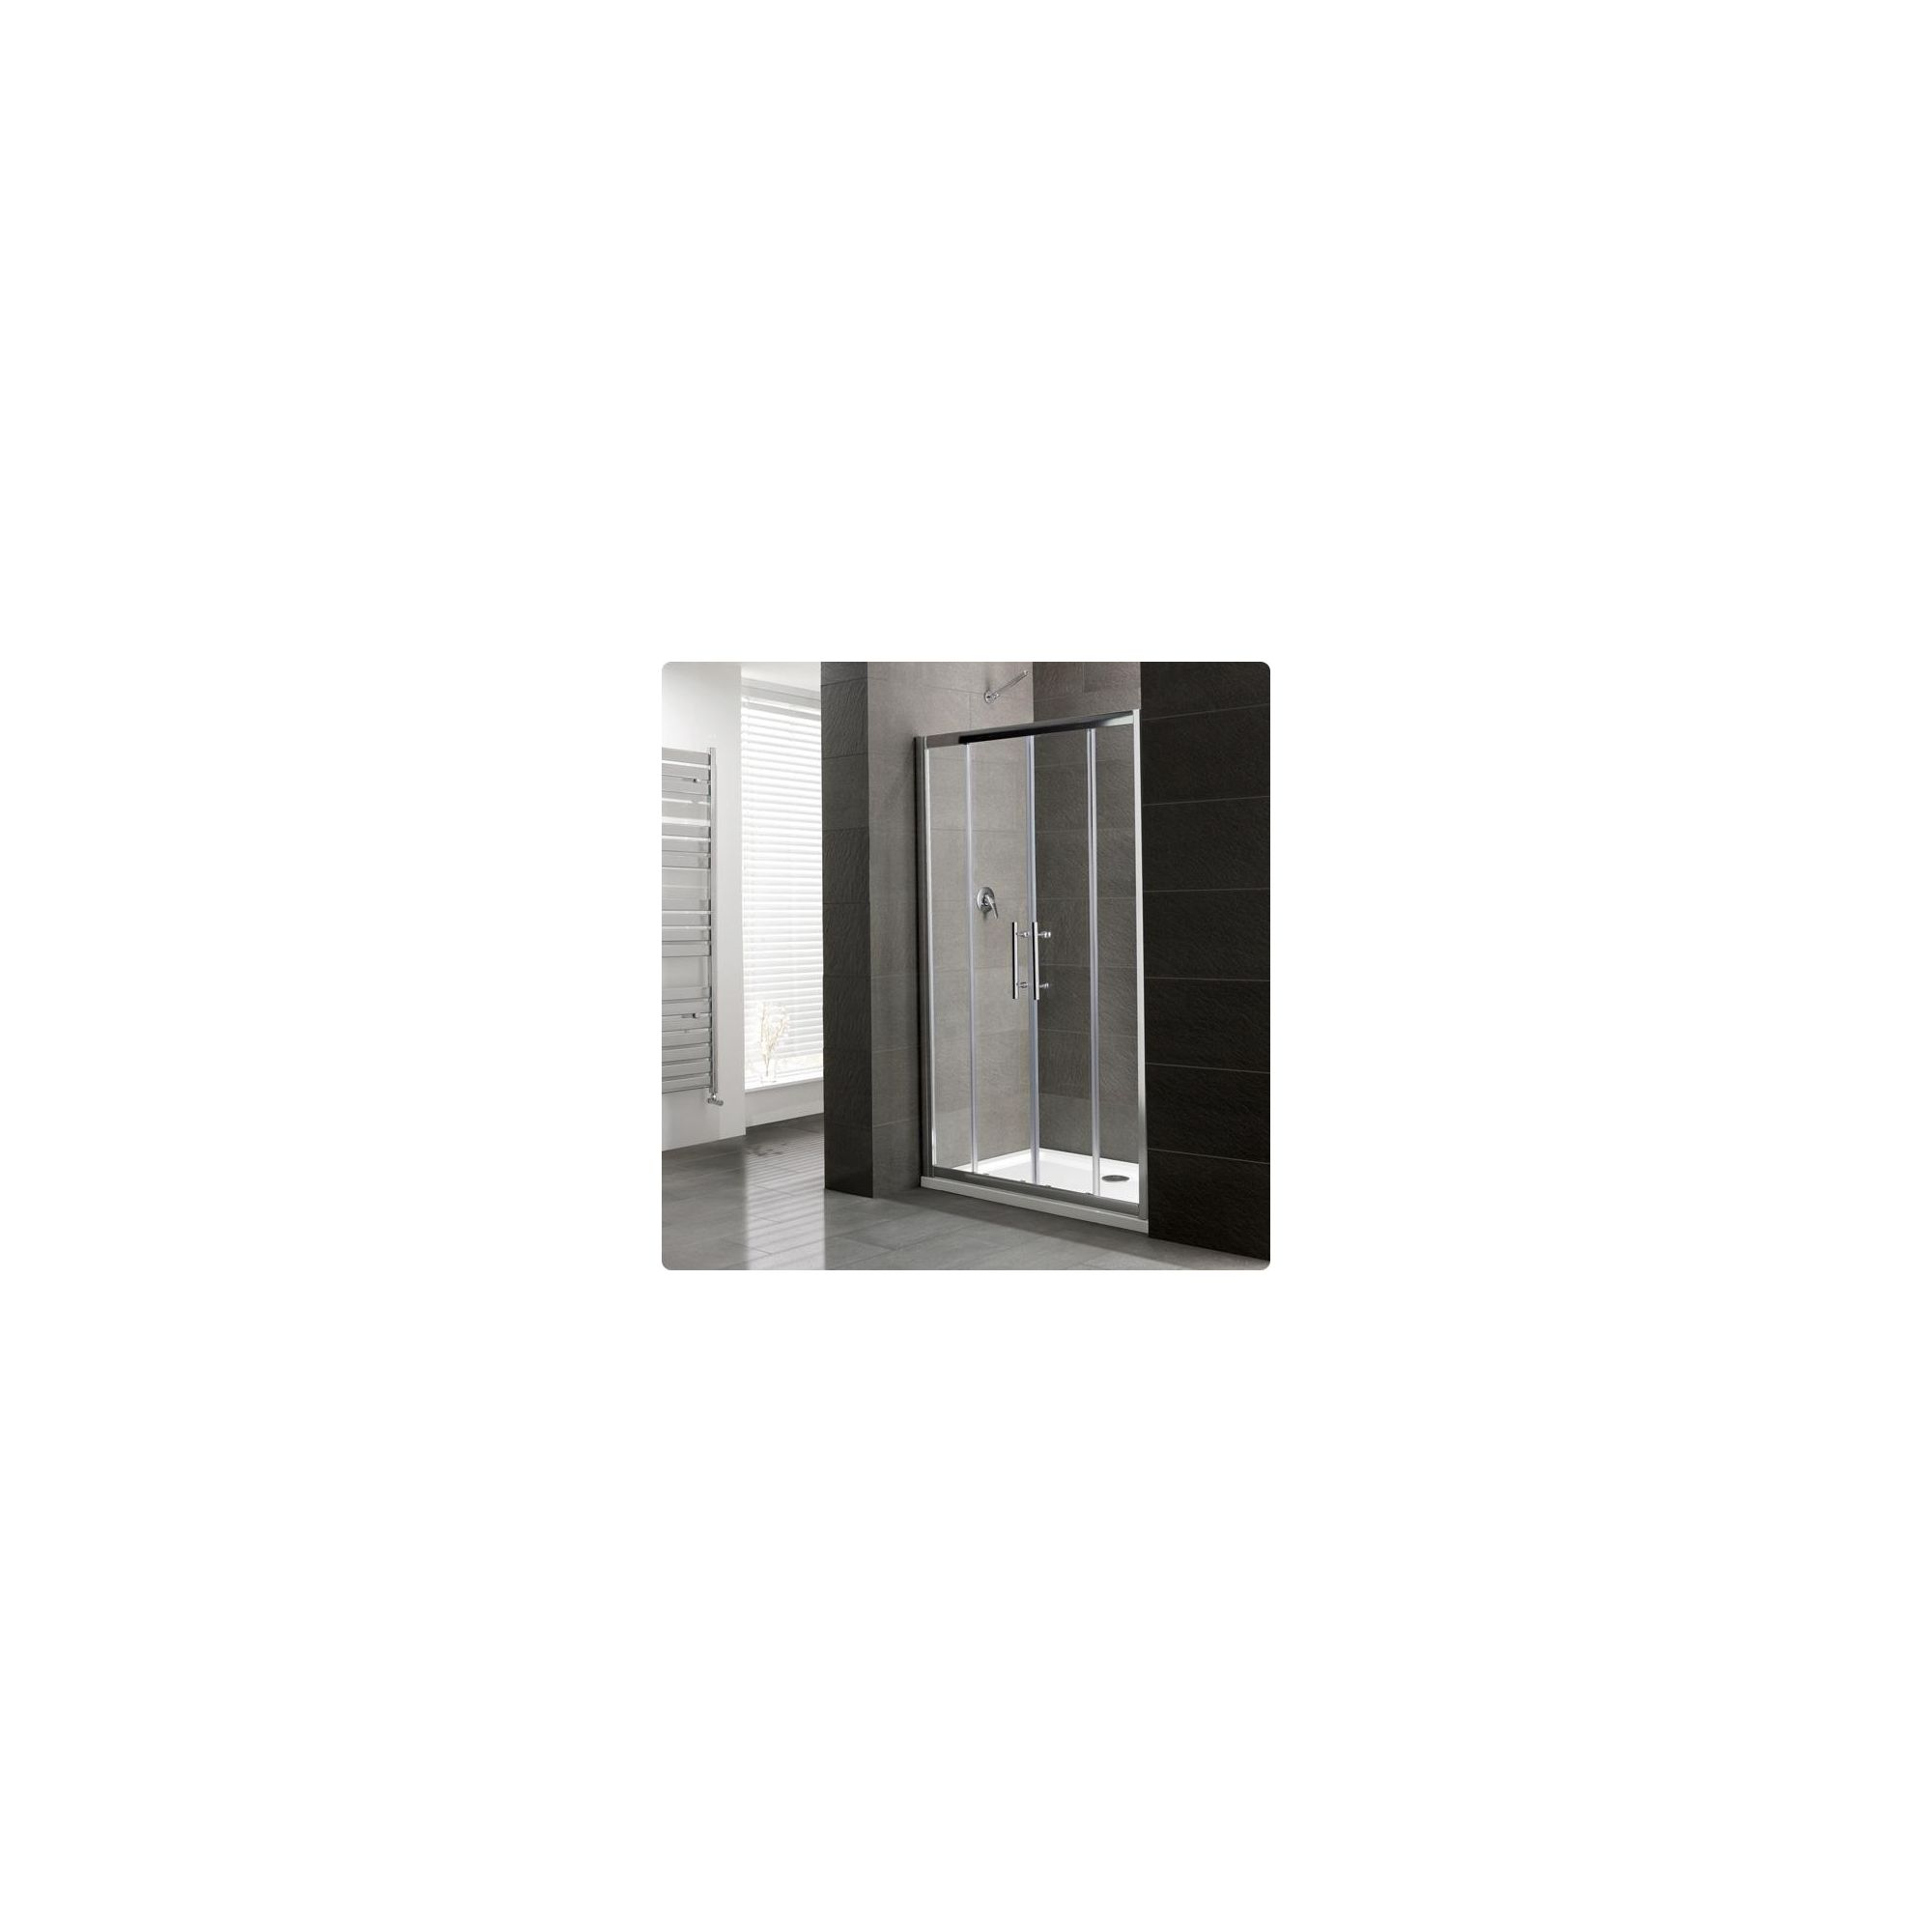 Duchy Select Silver Double Sliding Door Shower Enclosure, 1700mm x 900mm, Standard Tray, 6mm Glass at Tesco Direct